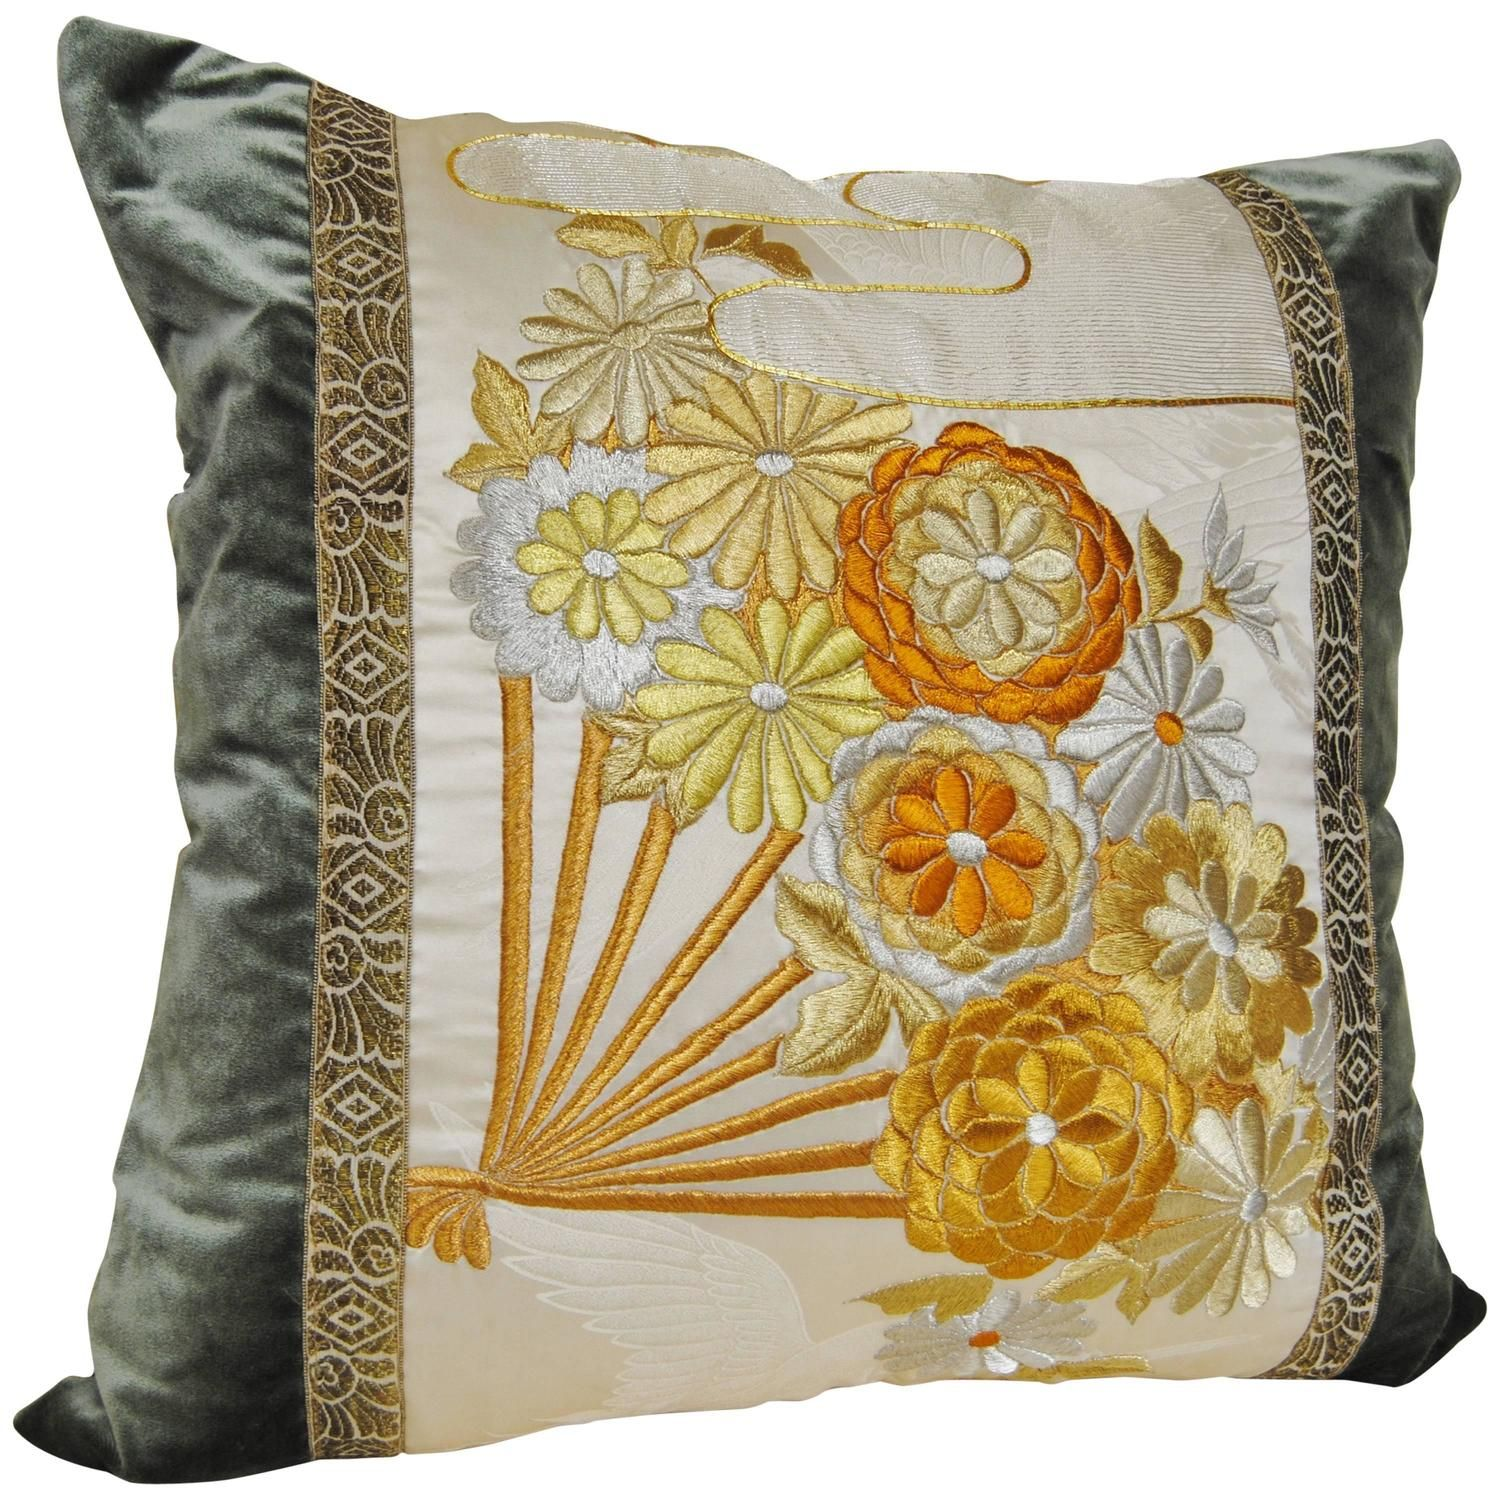 Custom Japanese Pillow from an Antique Silk Embroidered Uchikake ...